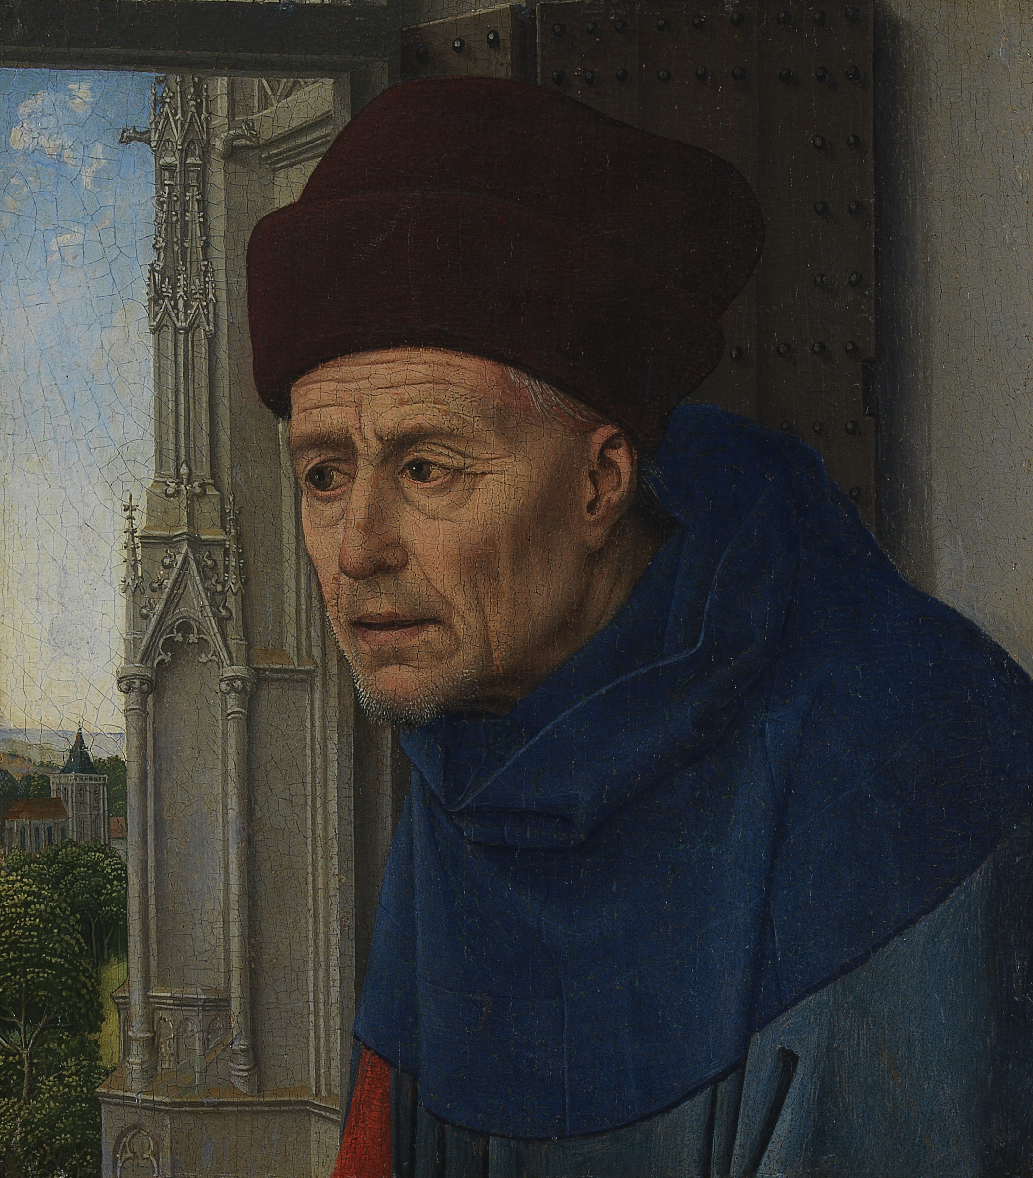 St.Joseph, Rogier van der Weyden, between circa 1435 and circa 1437 , tempera and oil on panel, (Image courtesy of the Calouste Gulbenkian Museum, Lisbon)